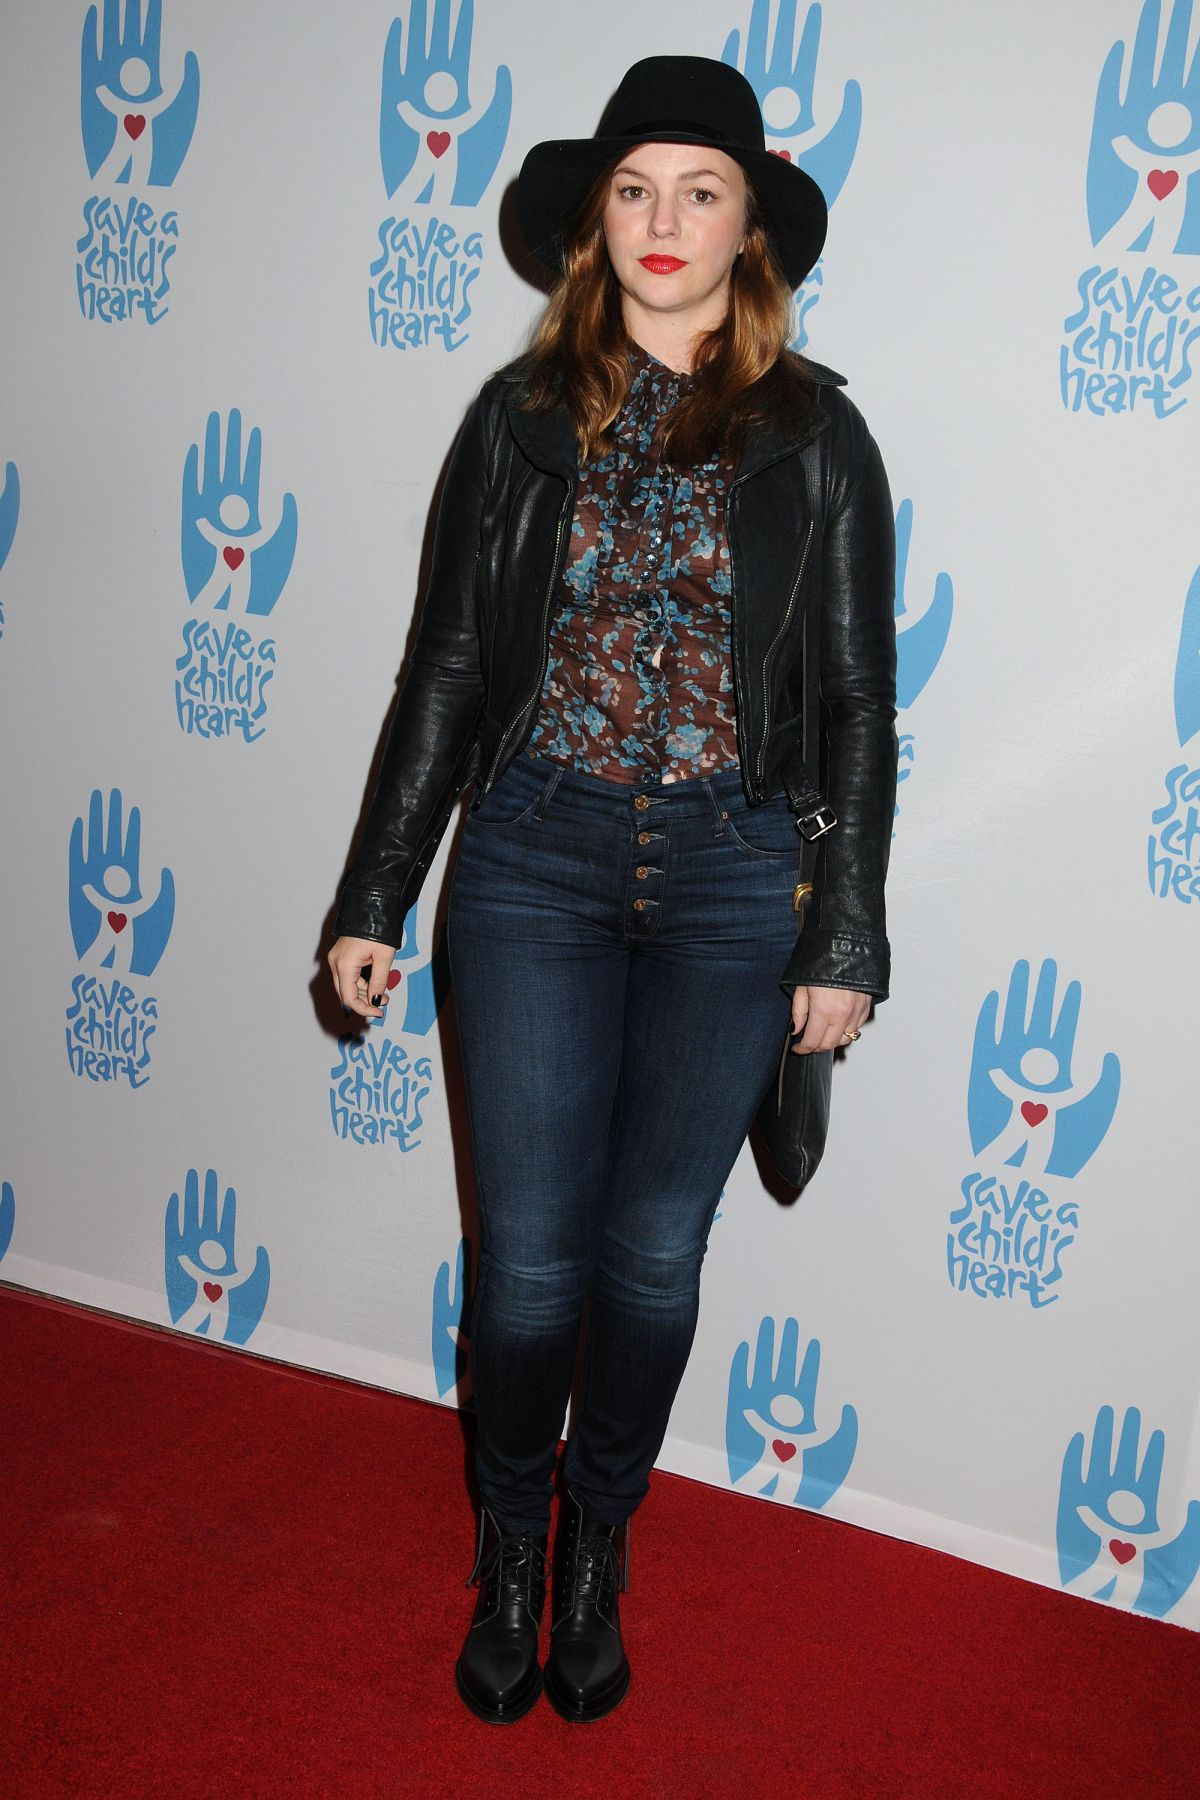 AMBER TAMBLYN at Save A Child